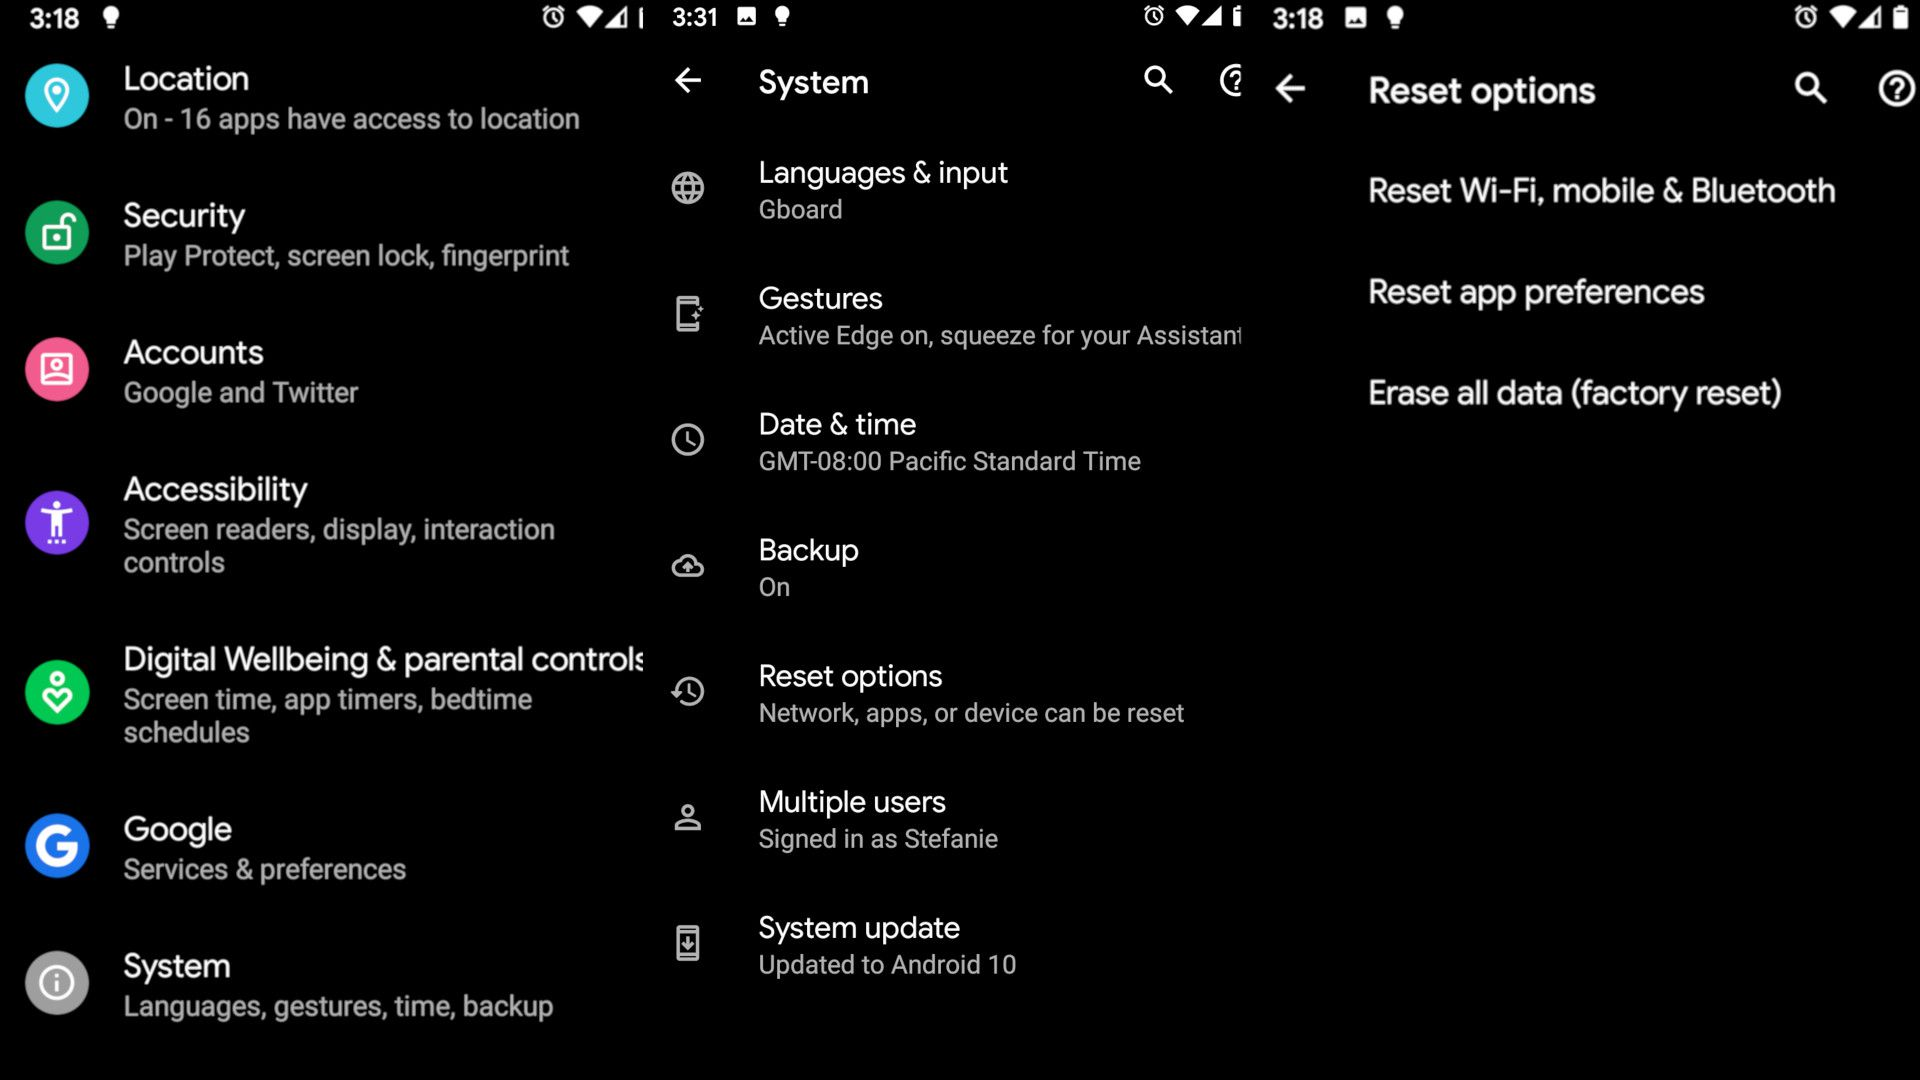 Android Settings app, System and Reset Options screens